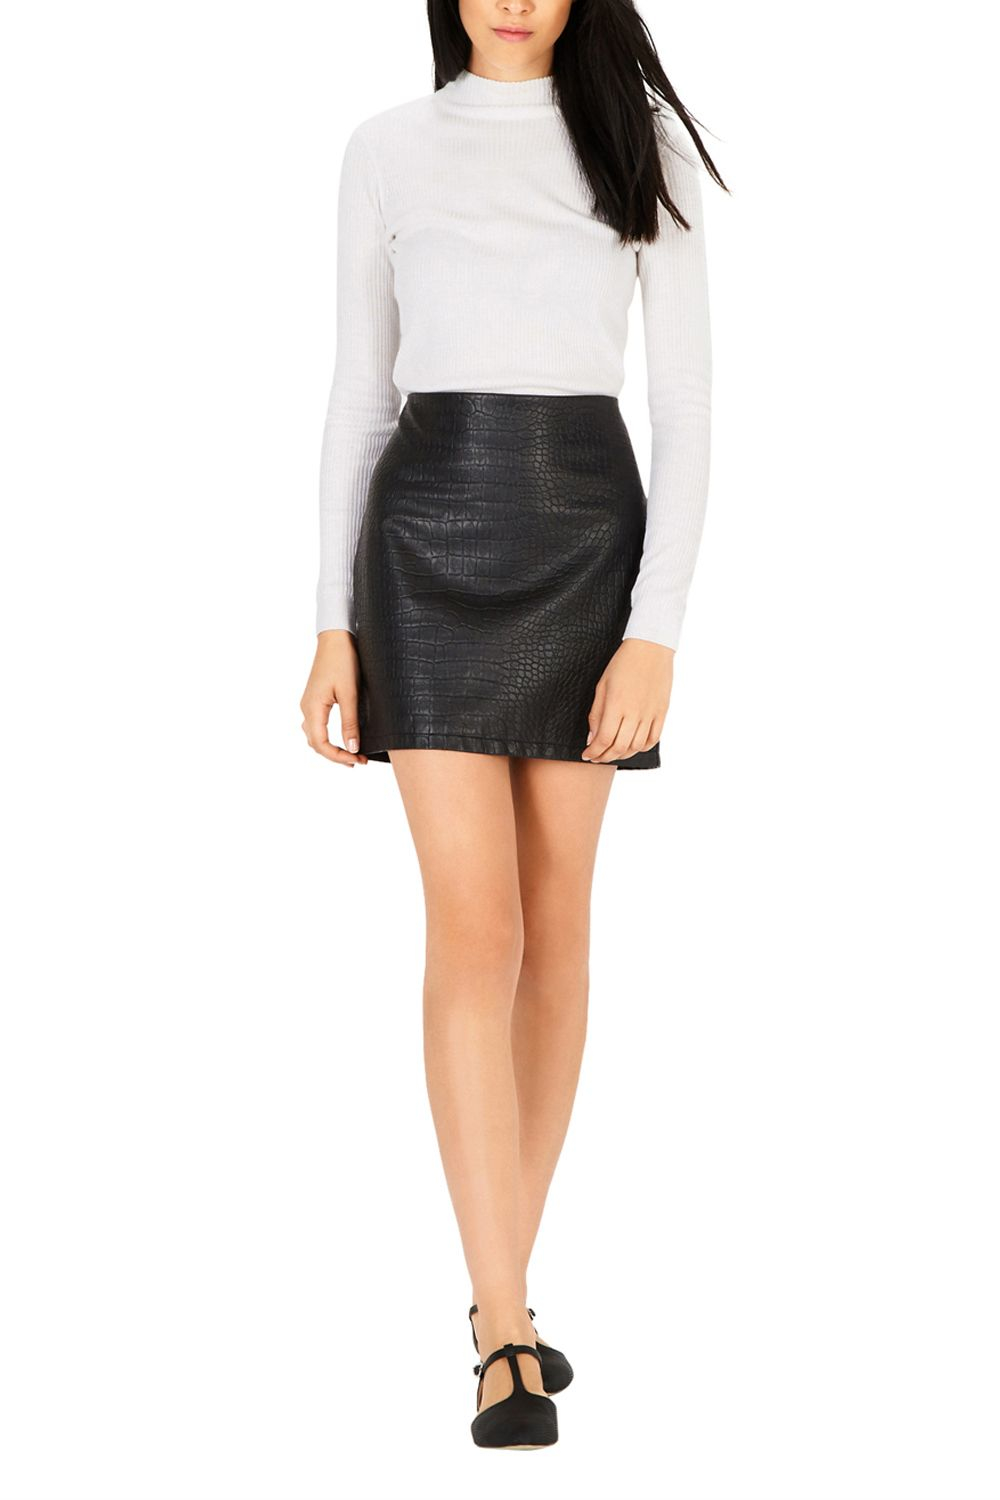 Warehouse Croc Faux Leather Skirt in Black | Lyst